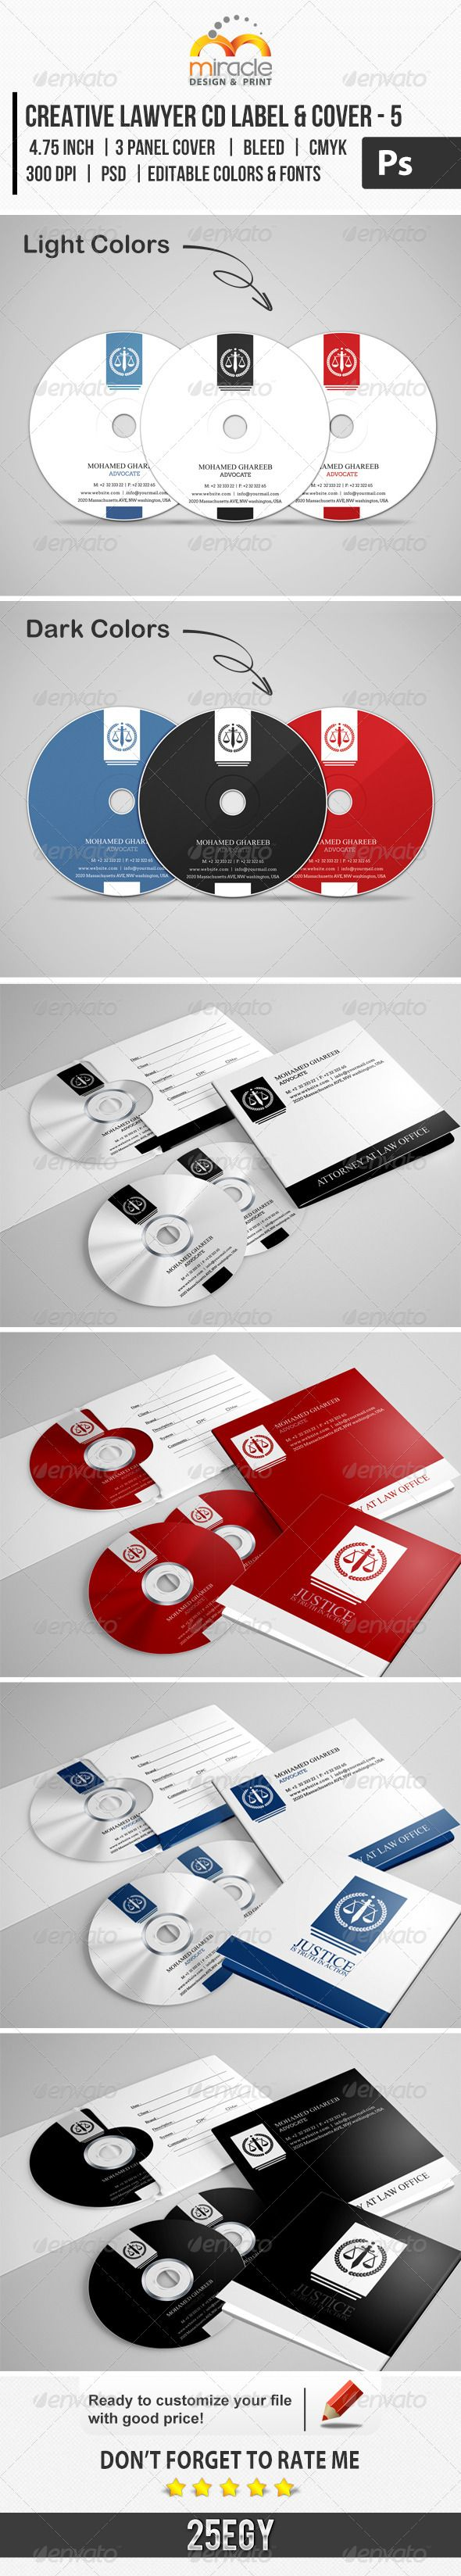 Creative Lawyer CD Label & Cover #5 — Photoshop PSD #lawyer #psd • Available here → https://graphicriver.net/item/creative-lawyer-cd-label-cover-5/7396036?ref=pxcr